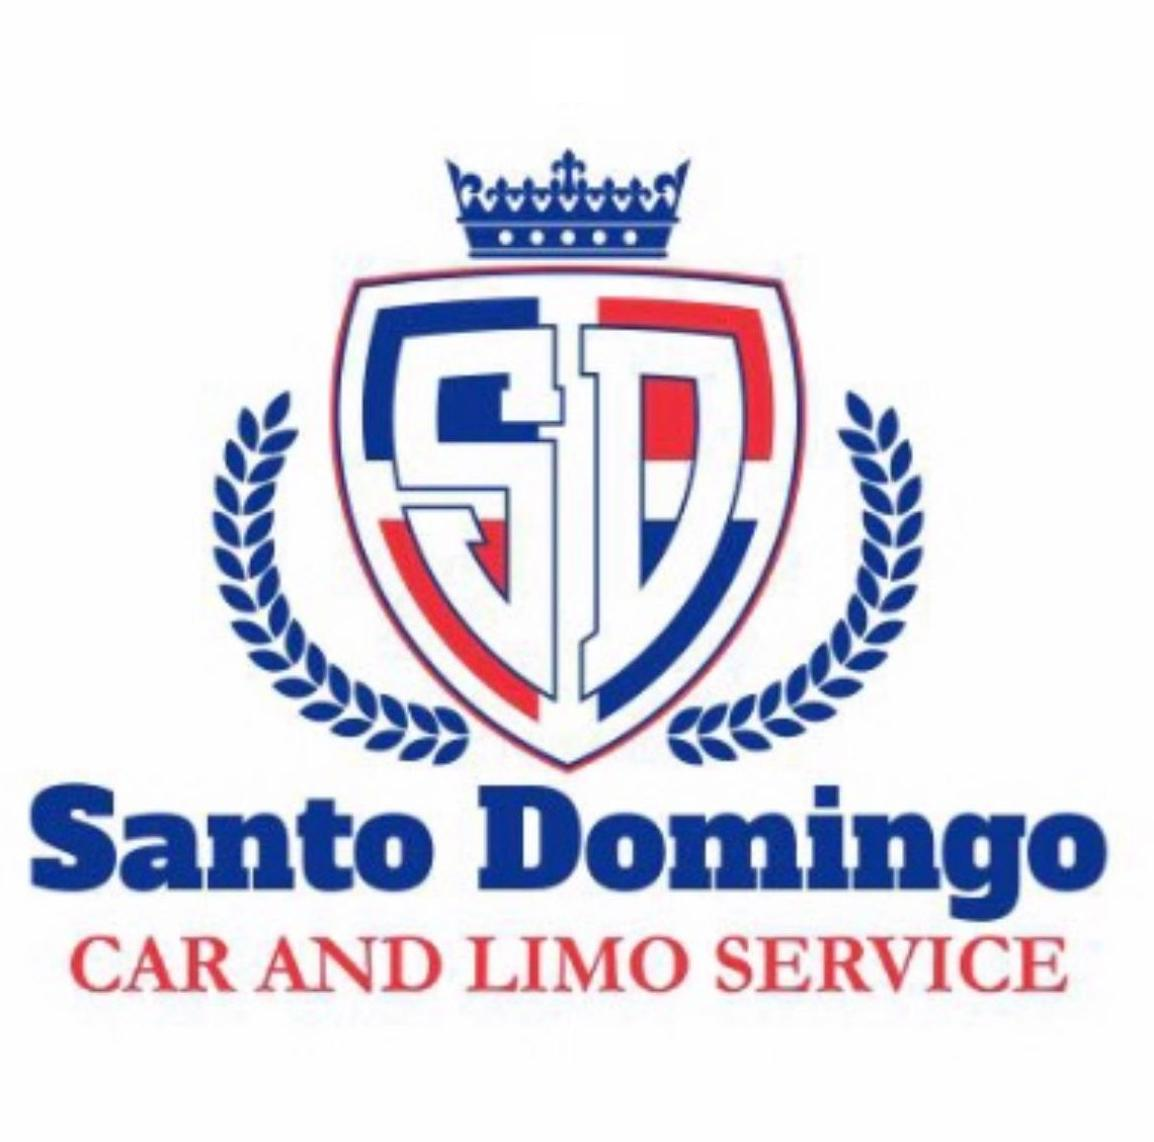 Santo Domingo Car Service Honored for Excellence in Car Service